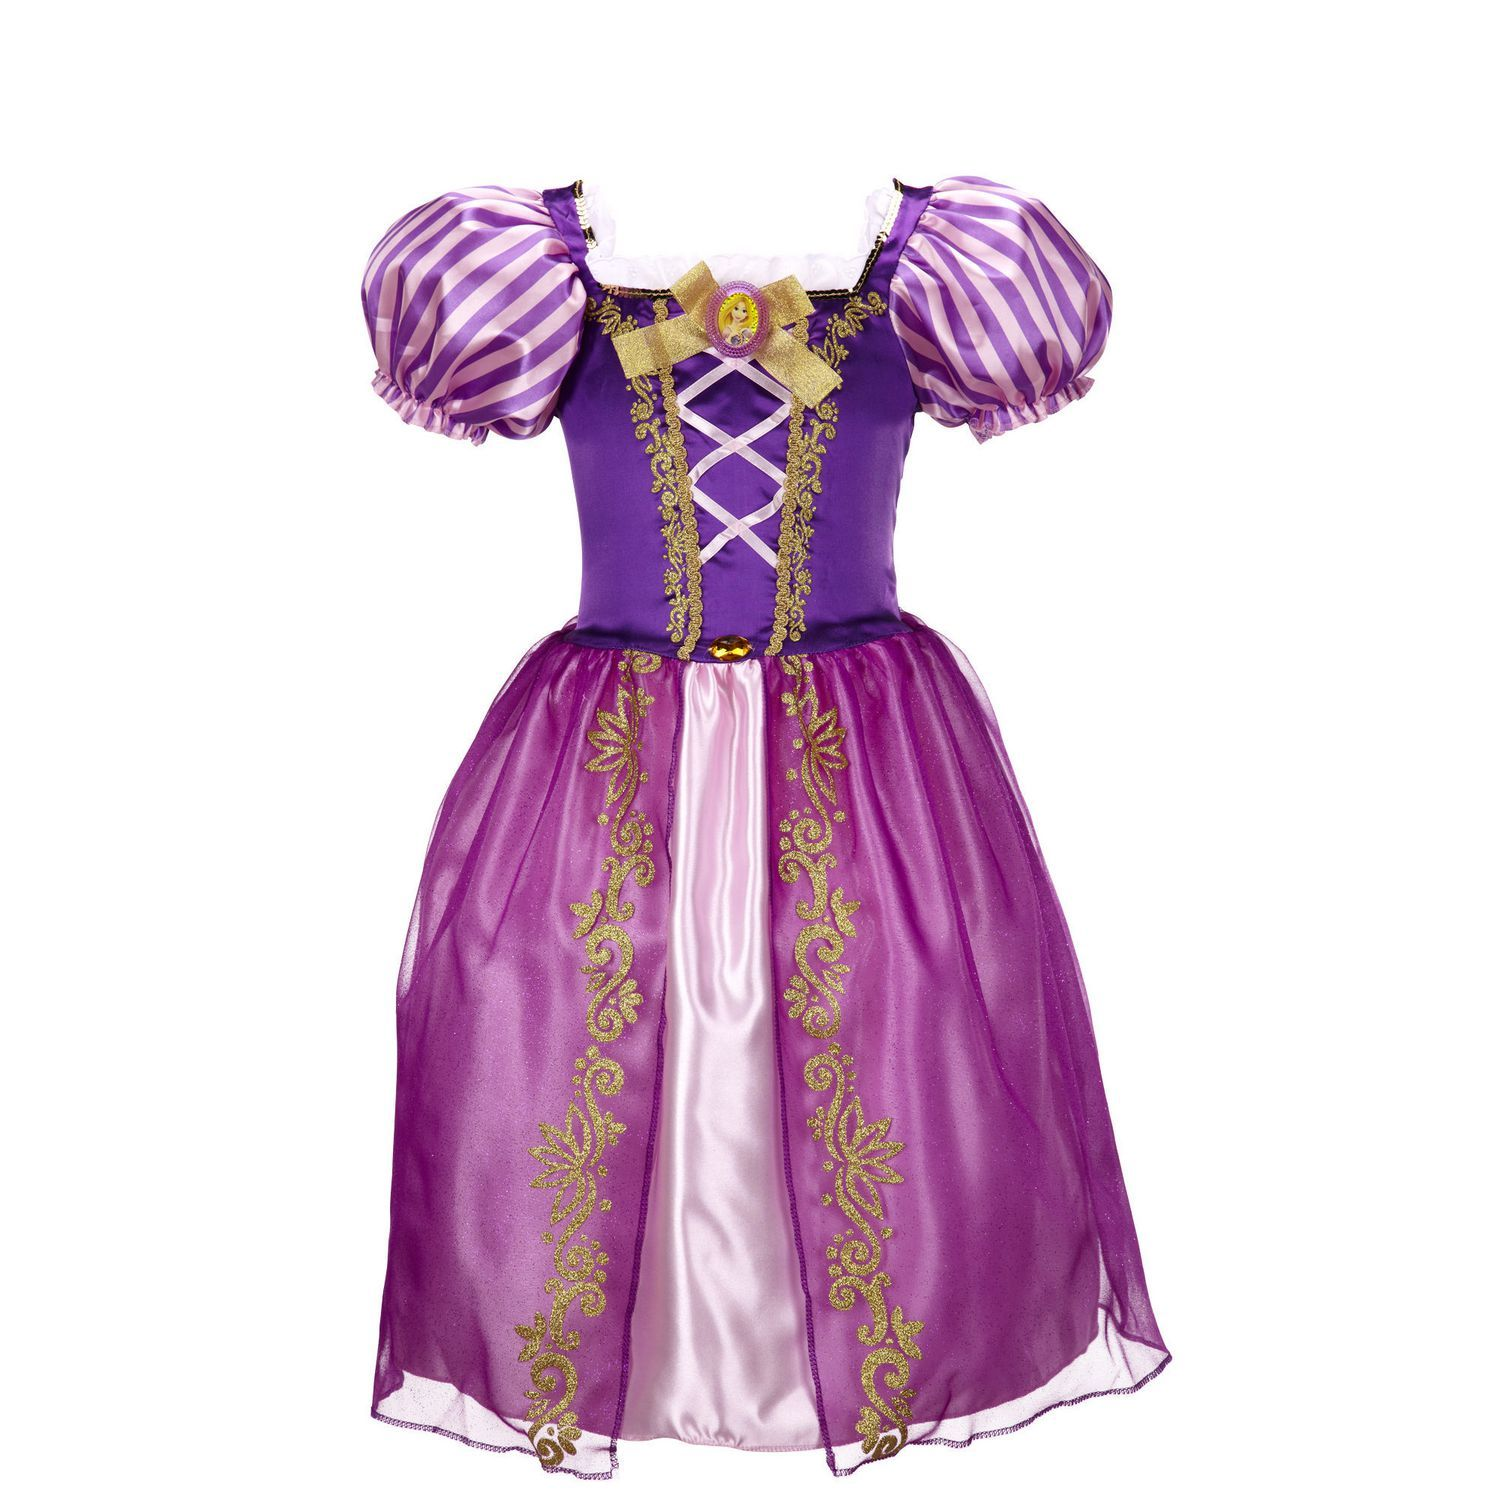 Princesse disney robe de raiponce bling ball couture pinterest raiponce princes - Princesse disney raiponce ...